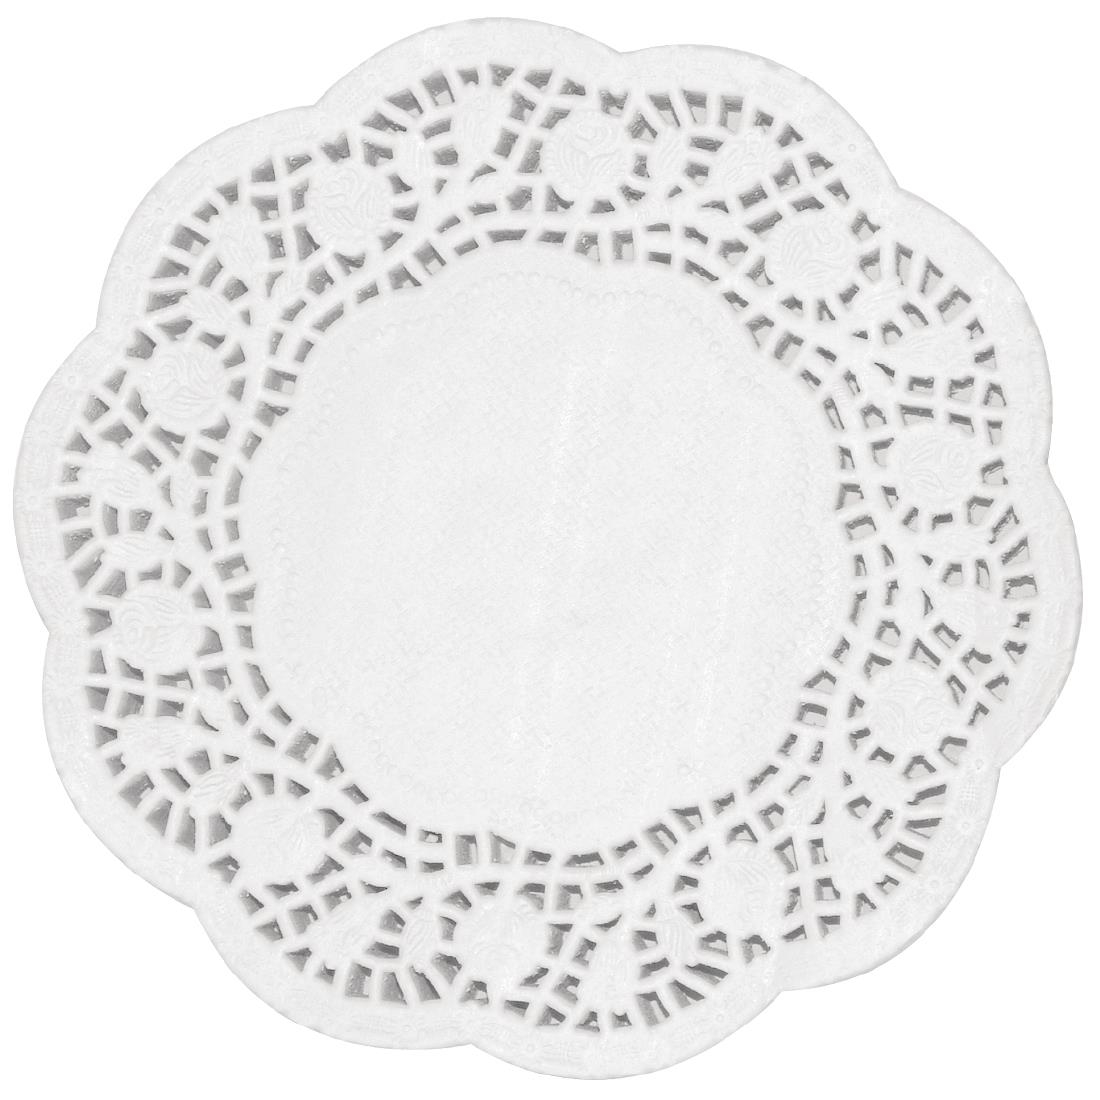 Image of Fiesta Round Paper Doilies 240mm (Pack of 250) Pack of 250